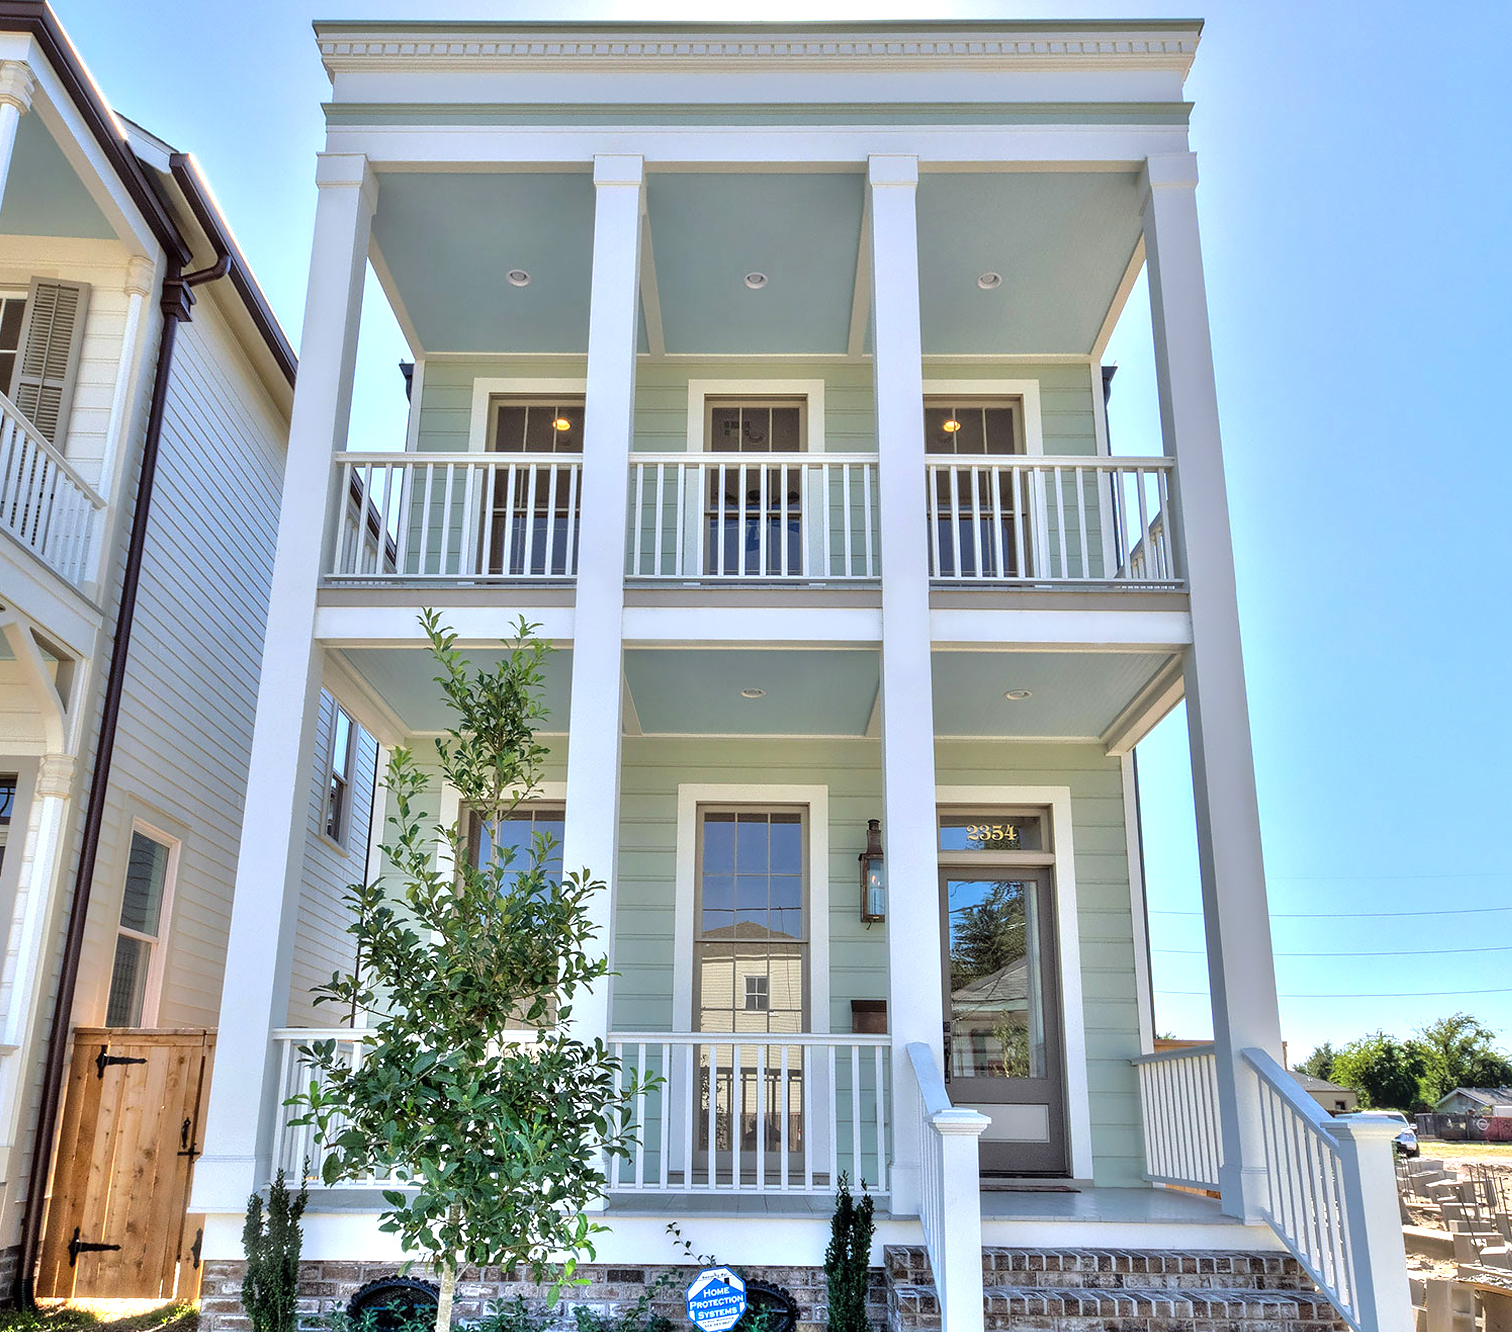 Fullsize Of Greek Revival House